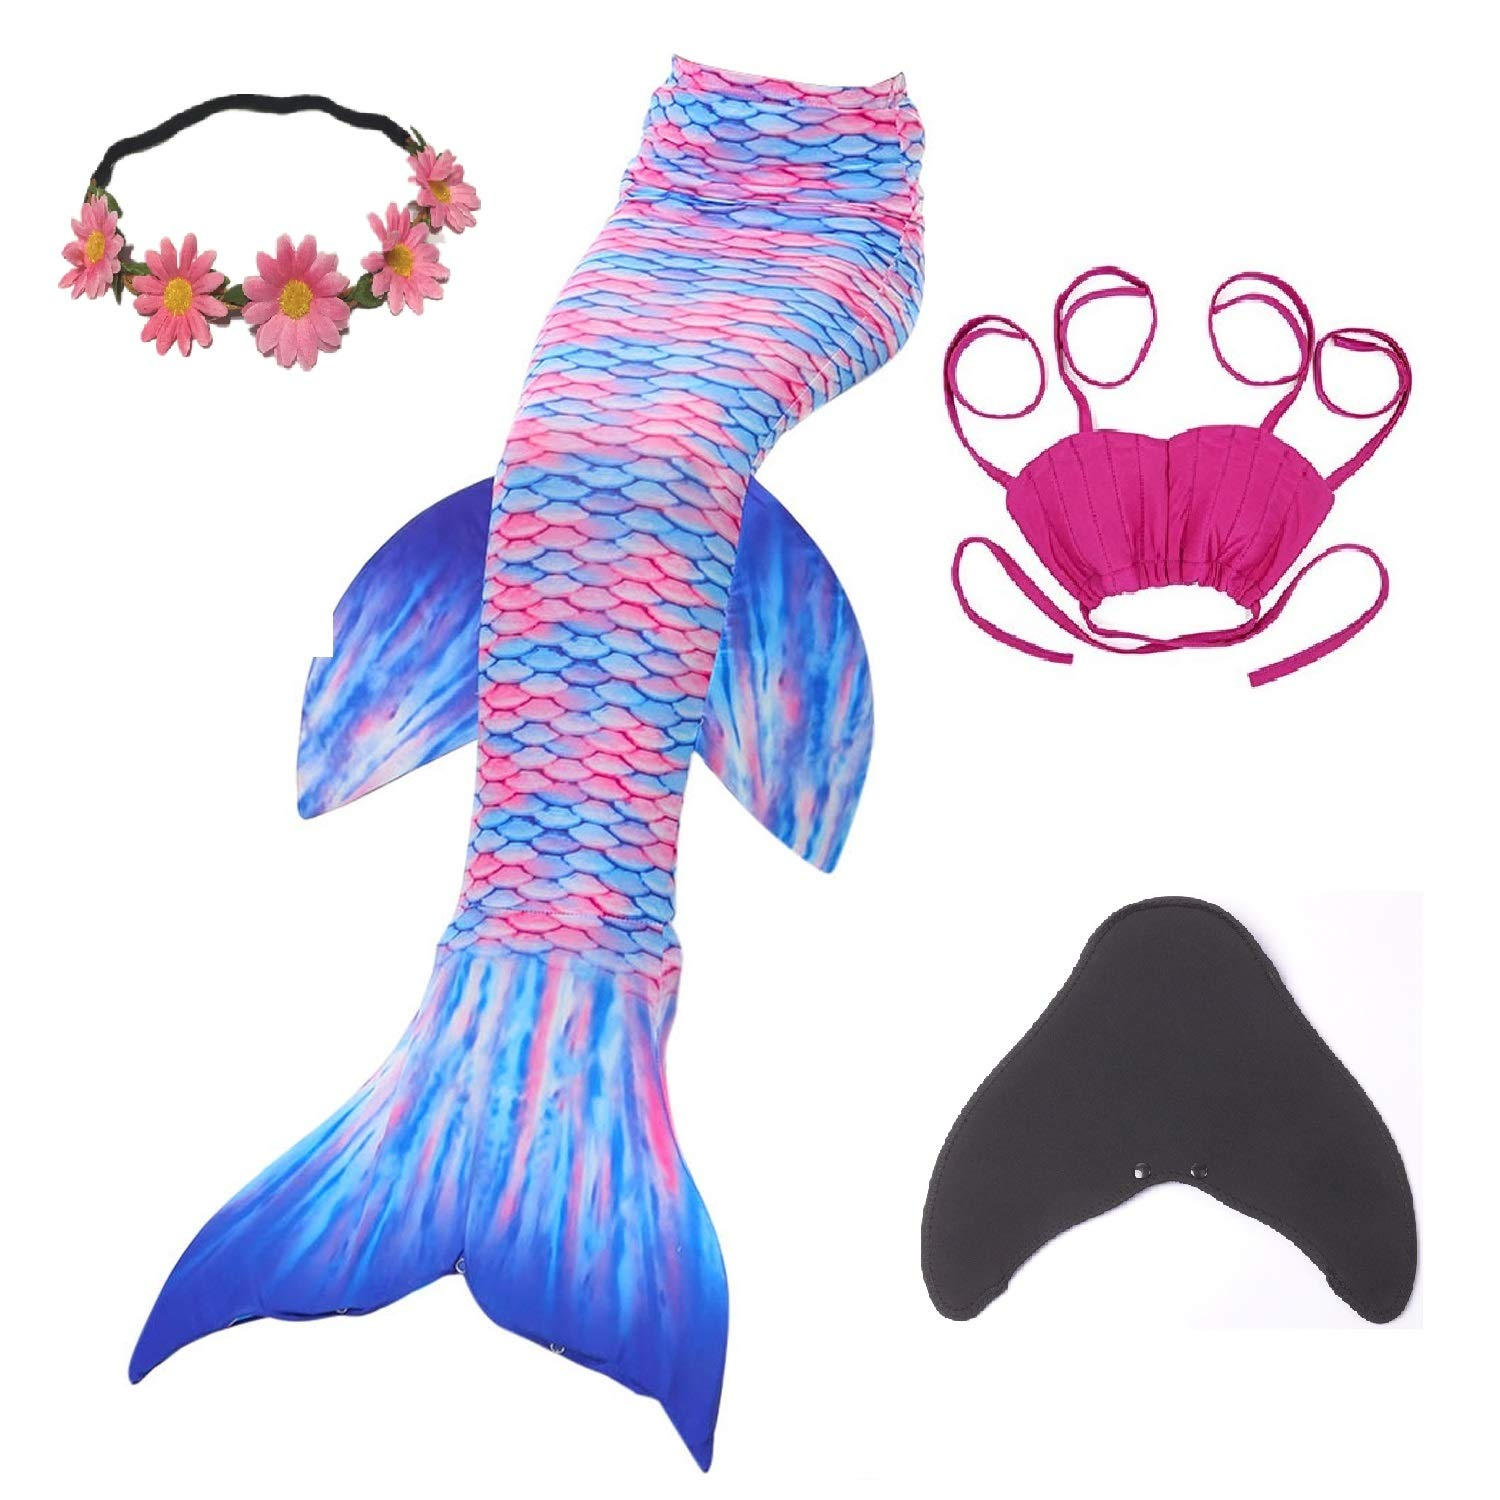 5 Piece Mermaid Tail Swimmable with Removable Fin Included Monofin and Flower Headband, Wet/Dry Outfit for Kids and Teens